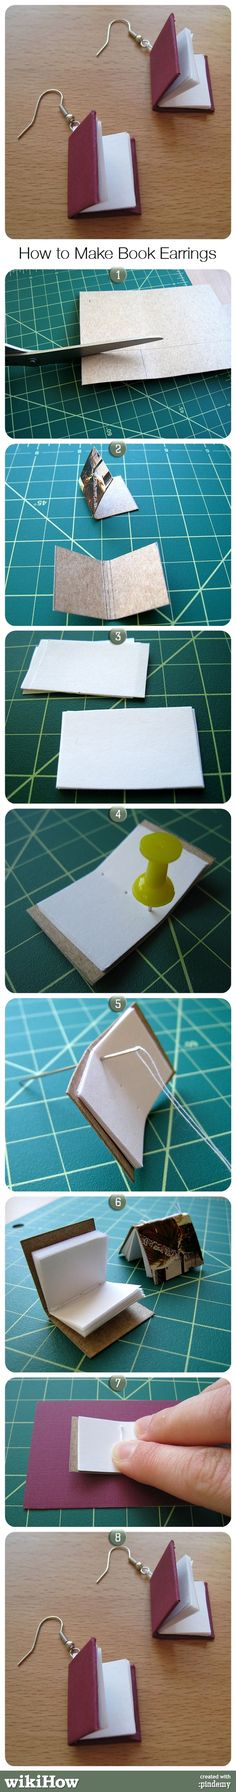 How to Make Book Earrings - DIY